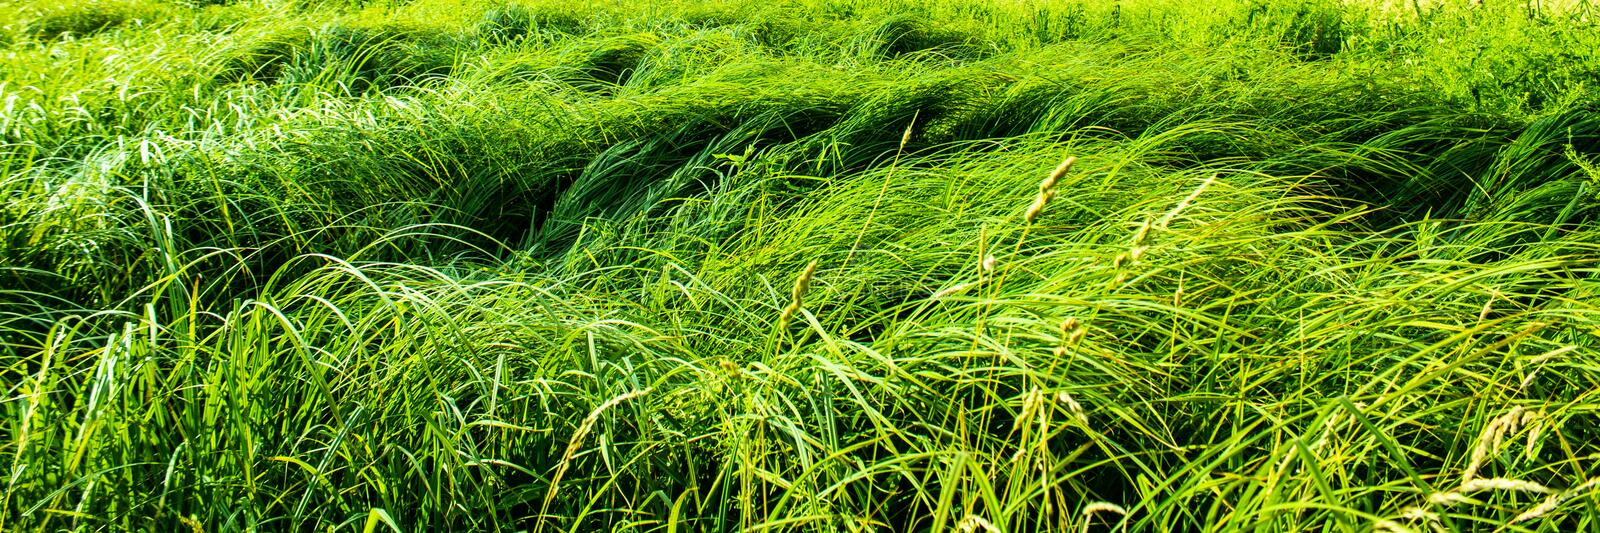 Thickets of uneven grass royalty free stock photography